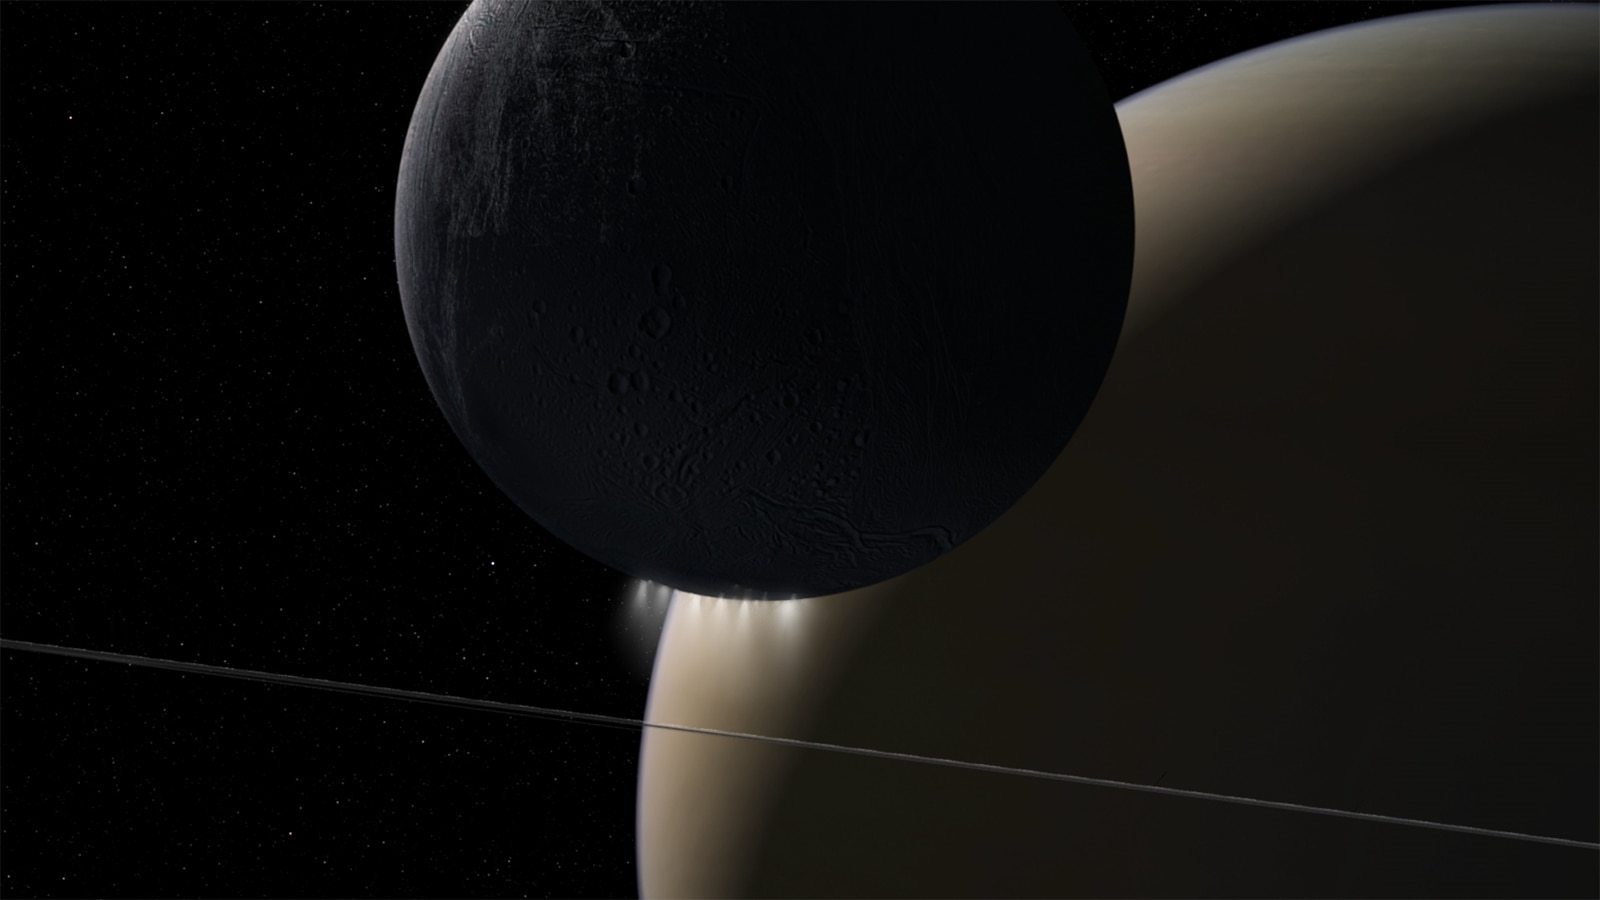 Saturn: Plasma waves turned into sound by NASA